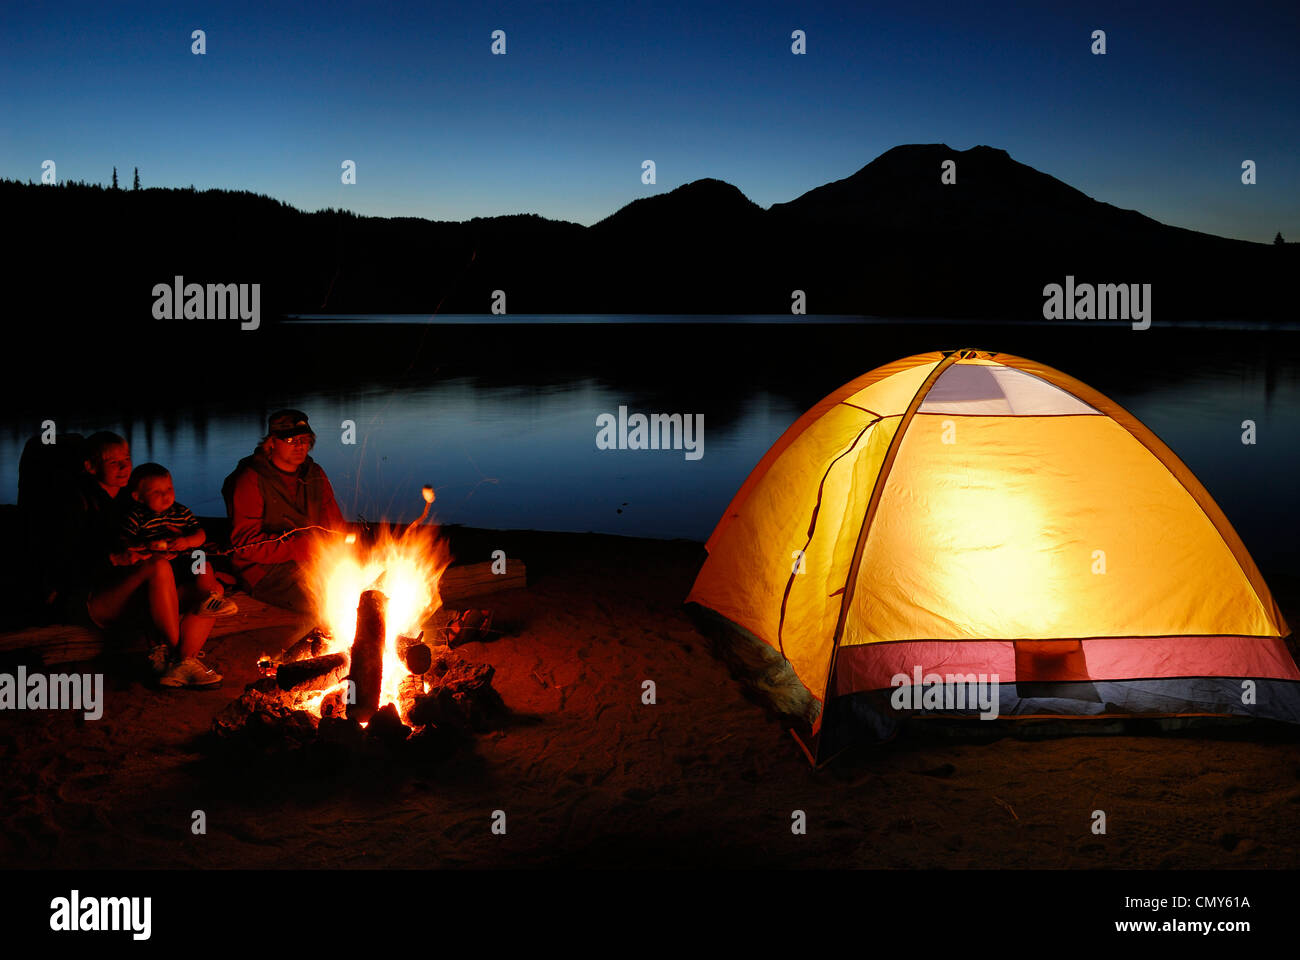 Camping Family Roasting Marshmallows Over A Campfire With Glowing Tent And Sparks Lake At Dusk South Sister Mountain Cascade Mountains Oregon